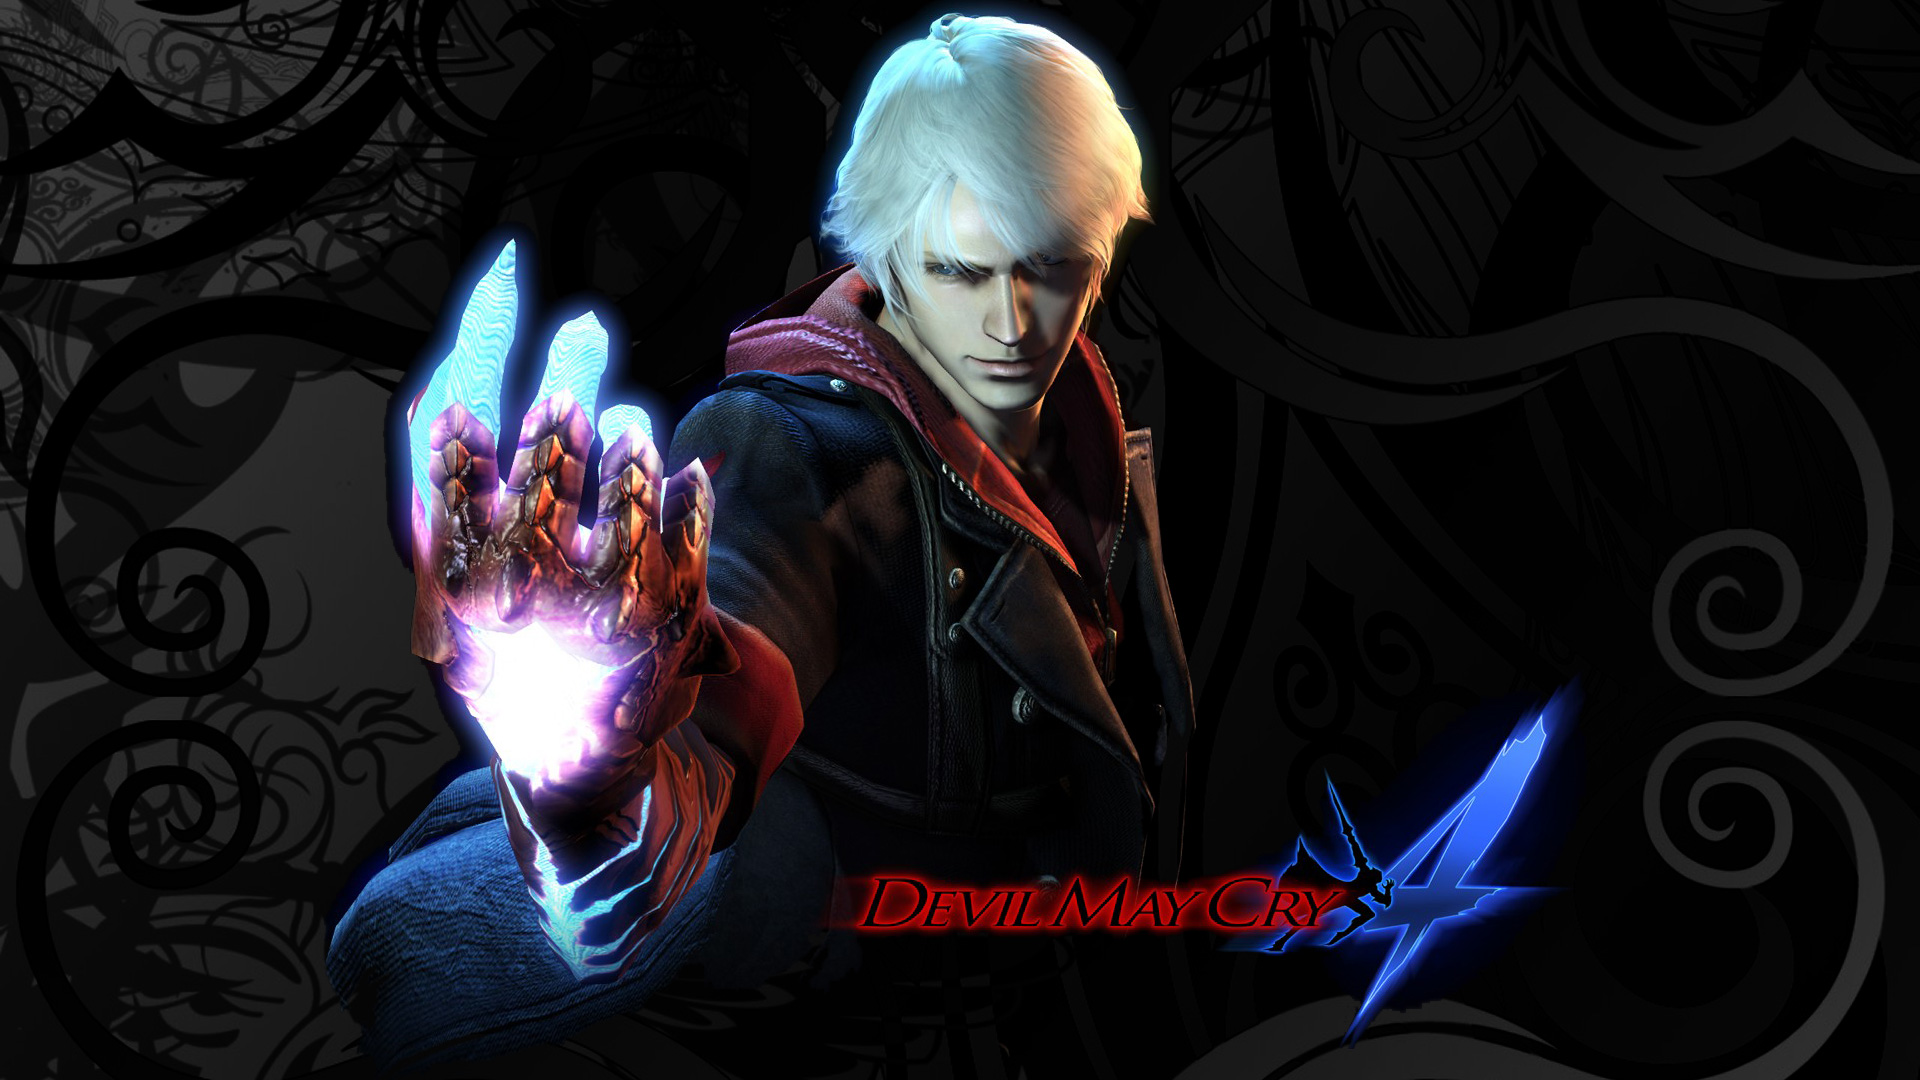 Devil May Cry 4 wallpaper 6